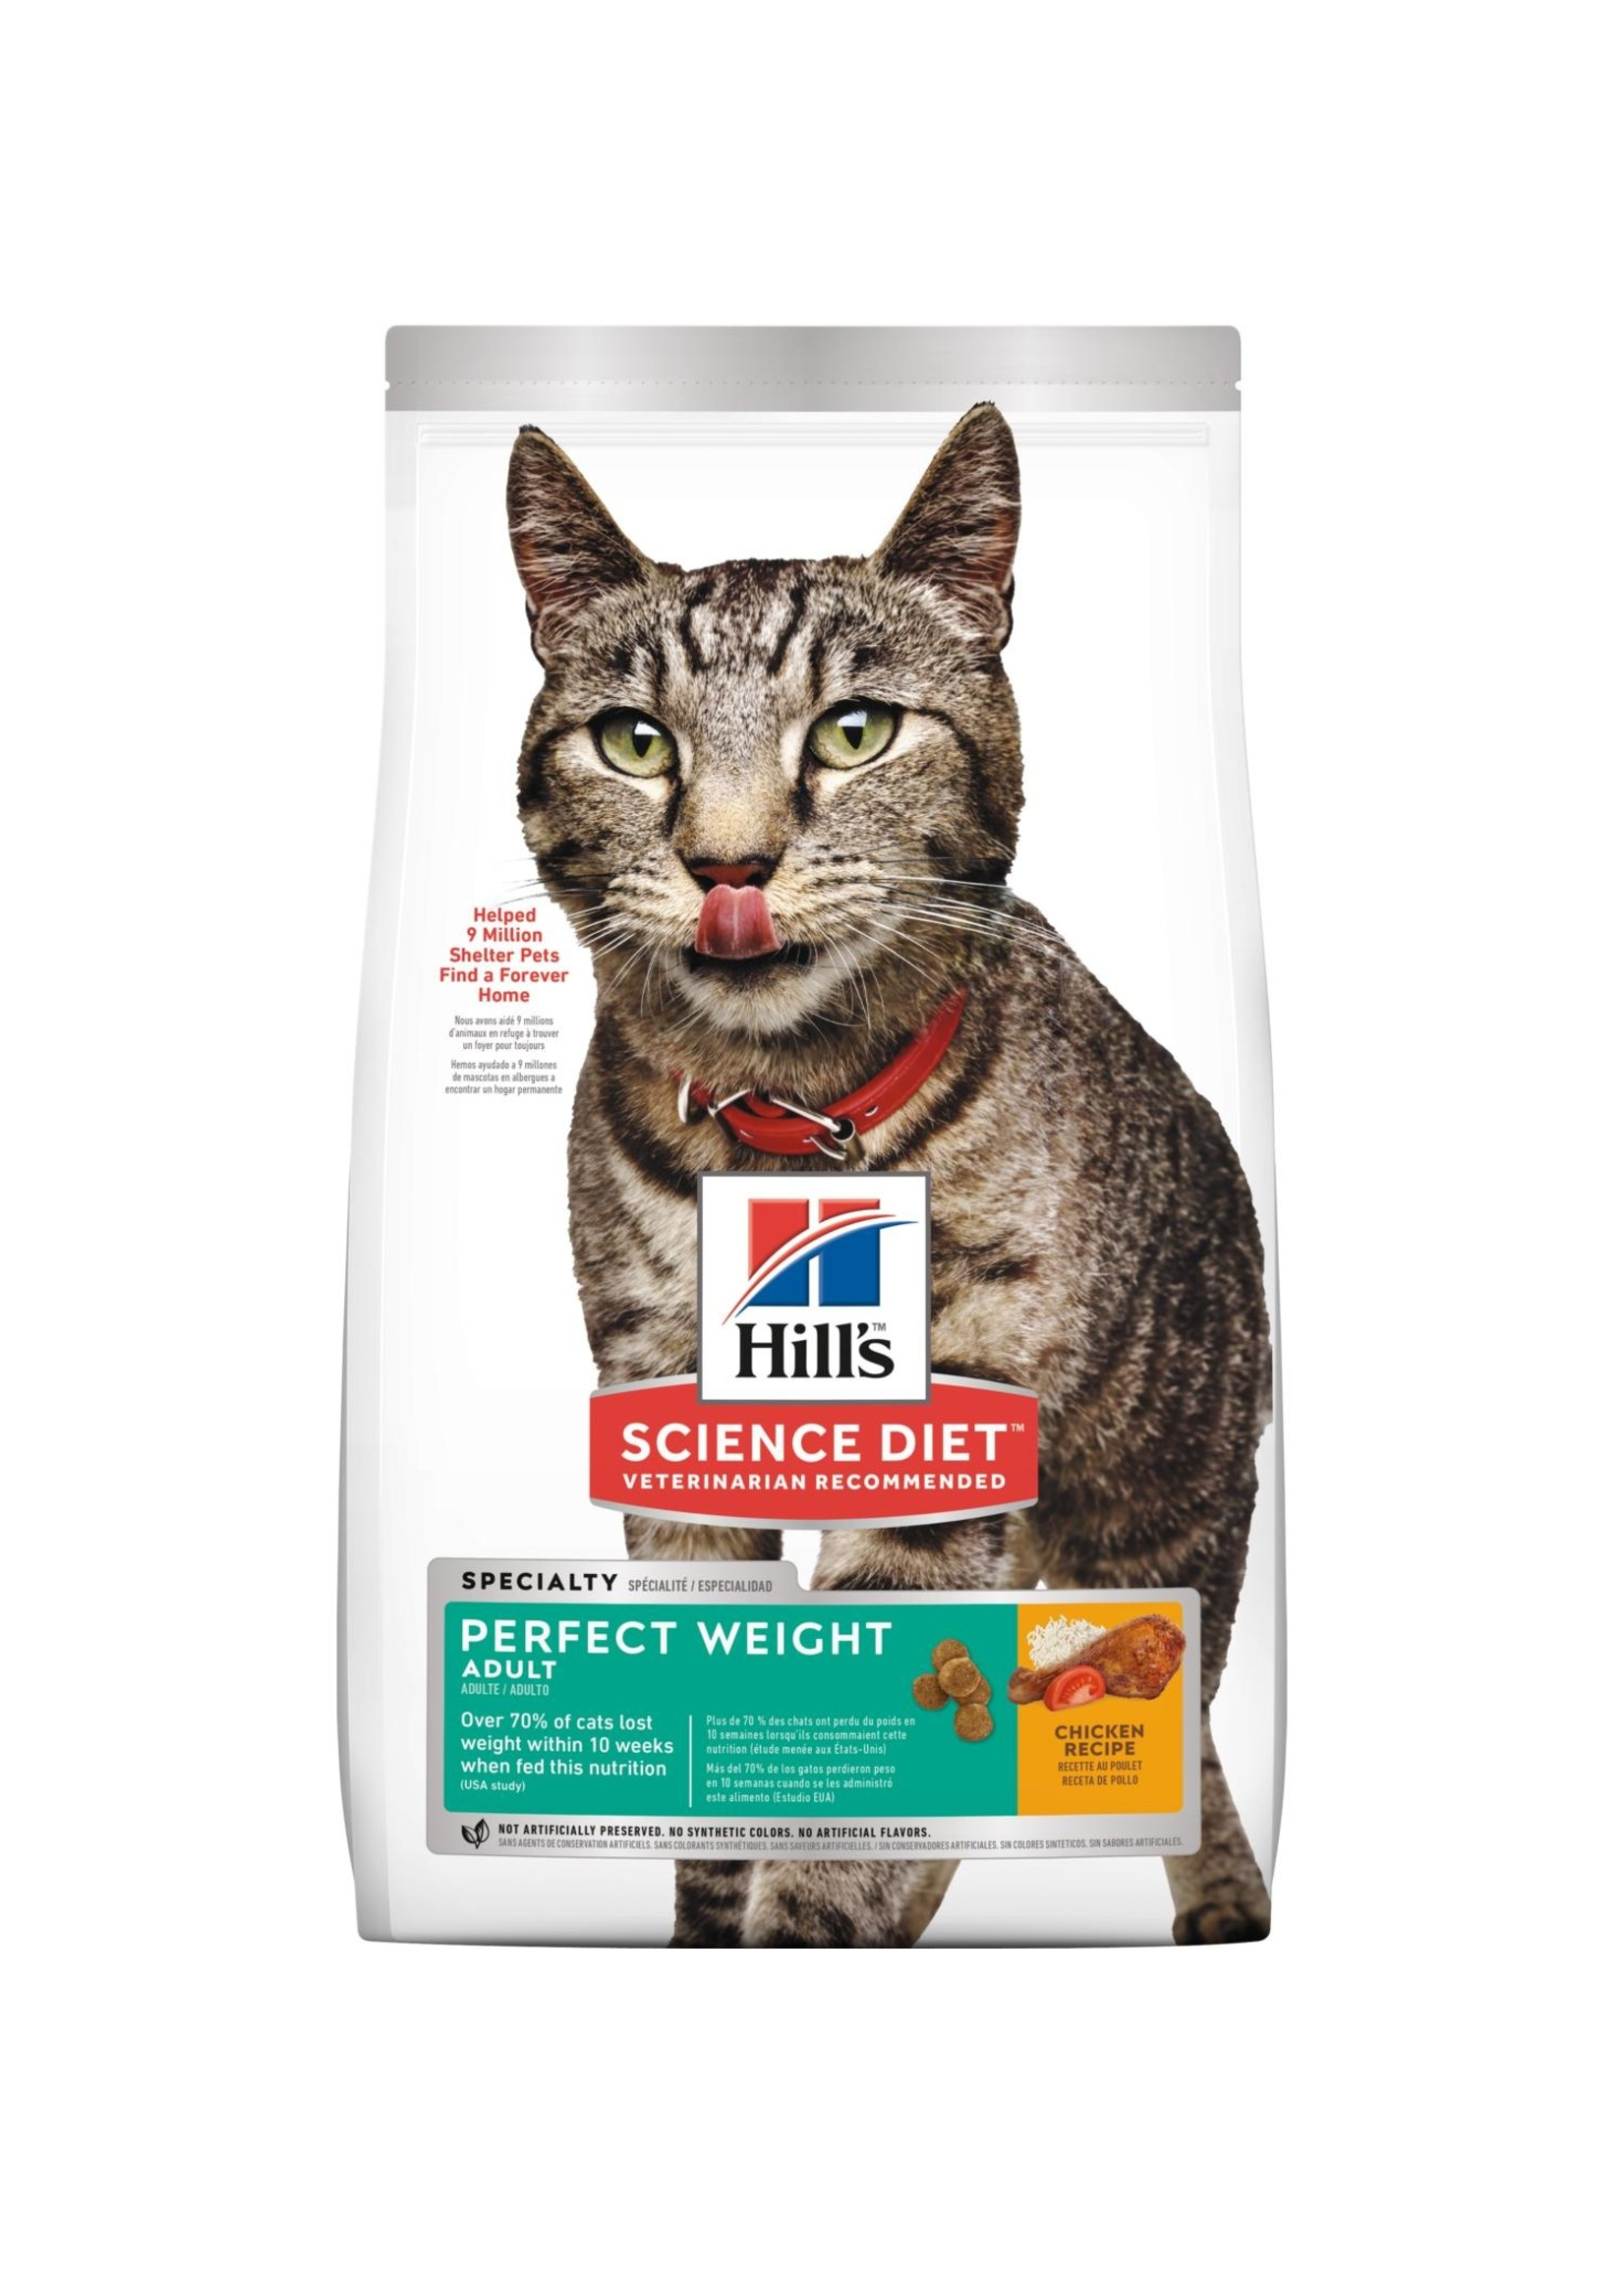 Hill's Science Diet Hill's Science Diet Adult Perfect Weight Dry Cat Food, Chicken Recipe, 3 lb Bag